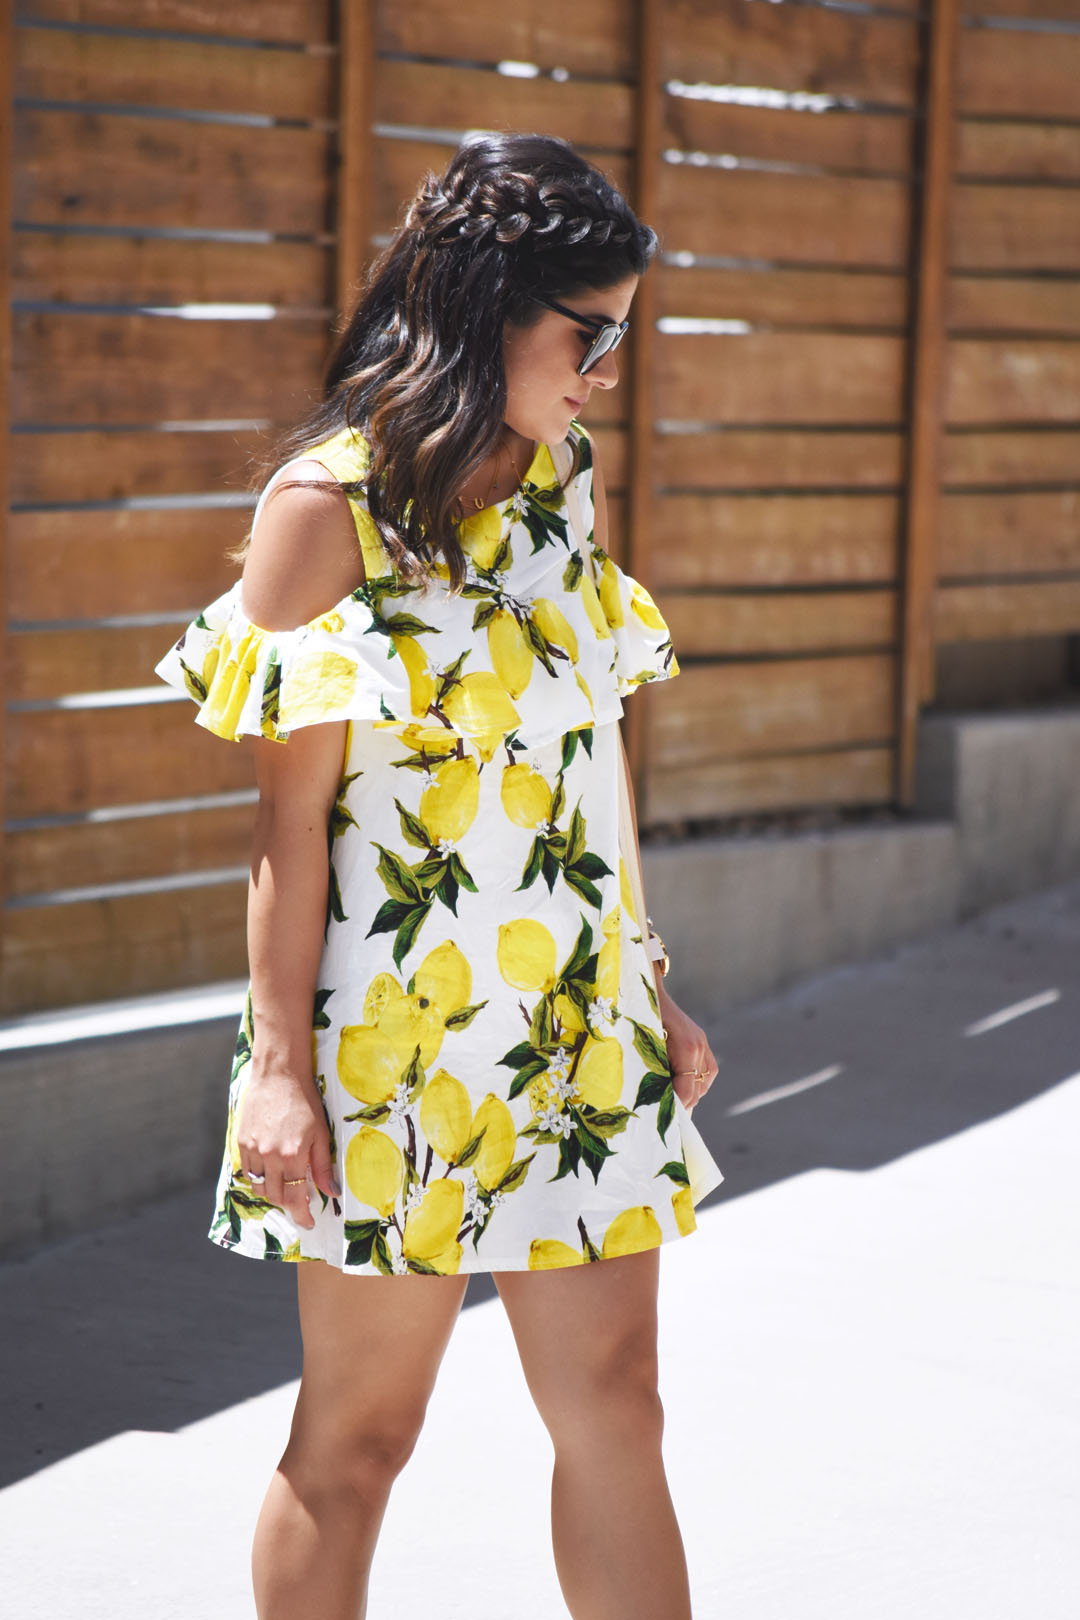 Carolina Hellal of Chic Talk wearing a lemon printed dress via Romwe, Nordstrom sunglasses, and Pueblo L.A gold rings